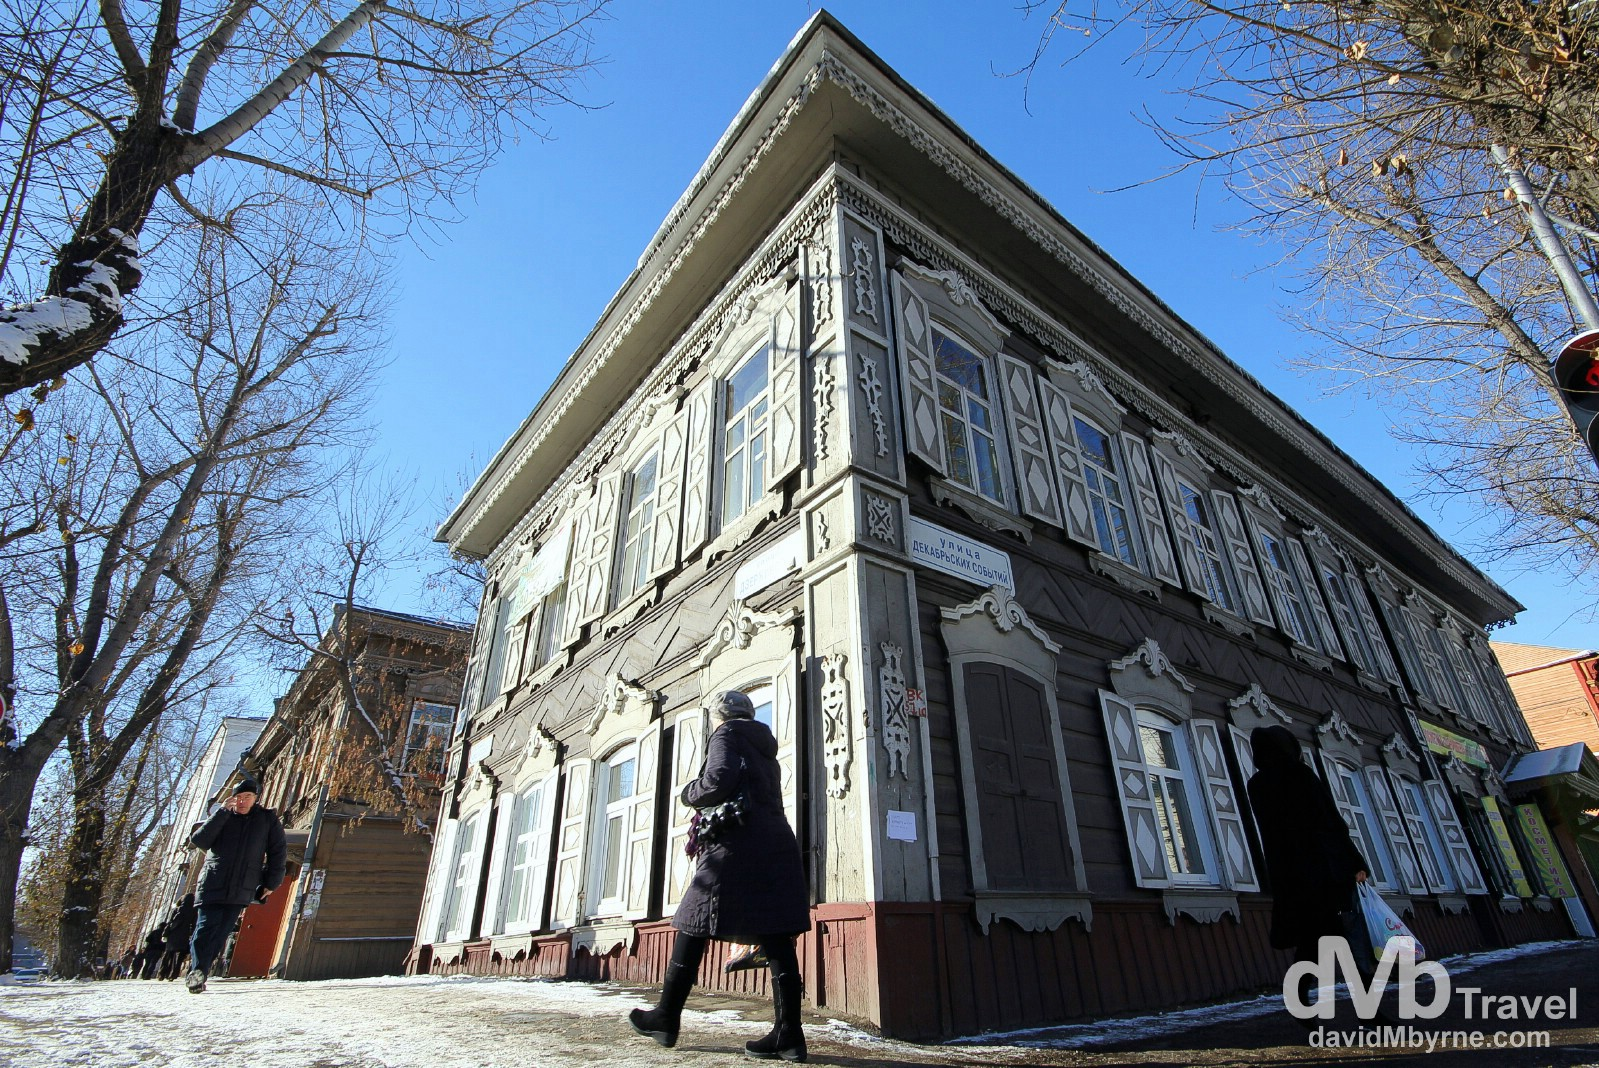 A typical Siberian wooden building on the streets of Irkutsk, Siberian Russia. November 7th 2012.